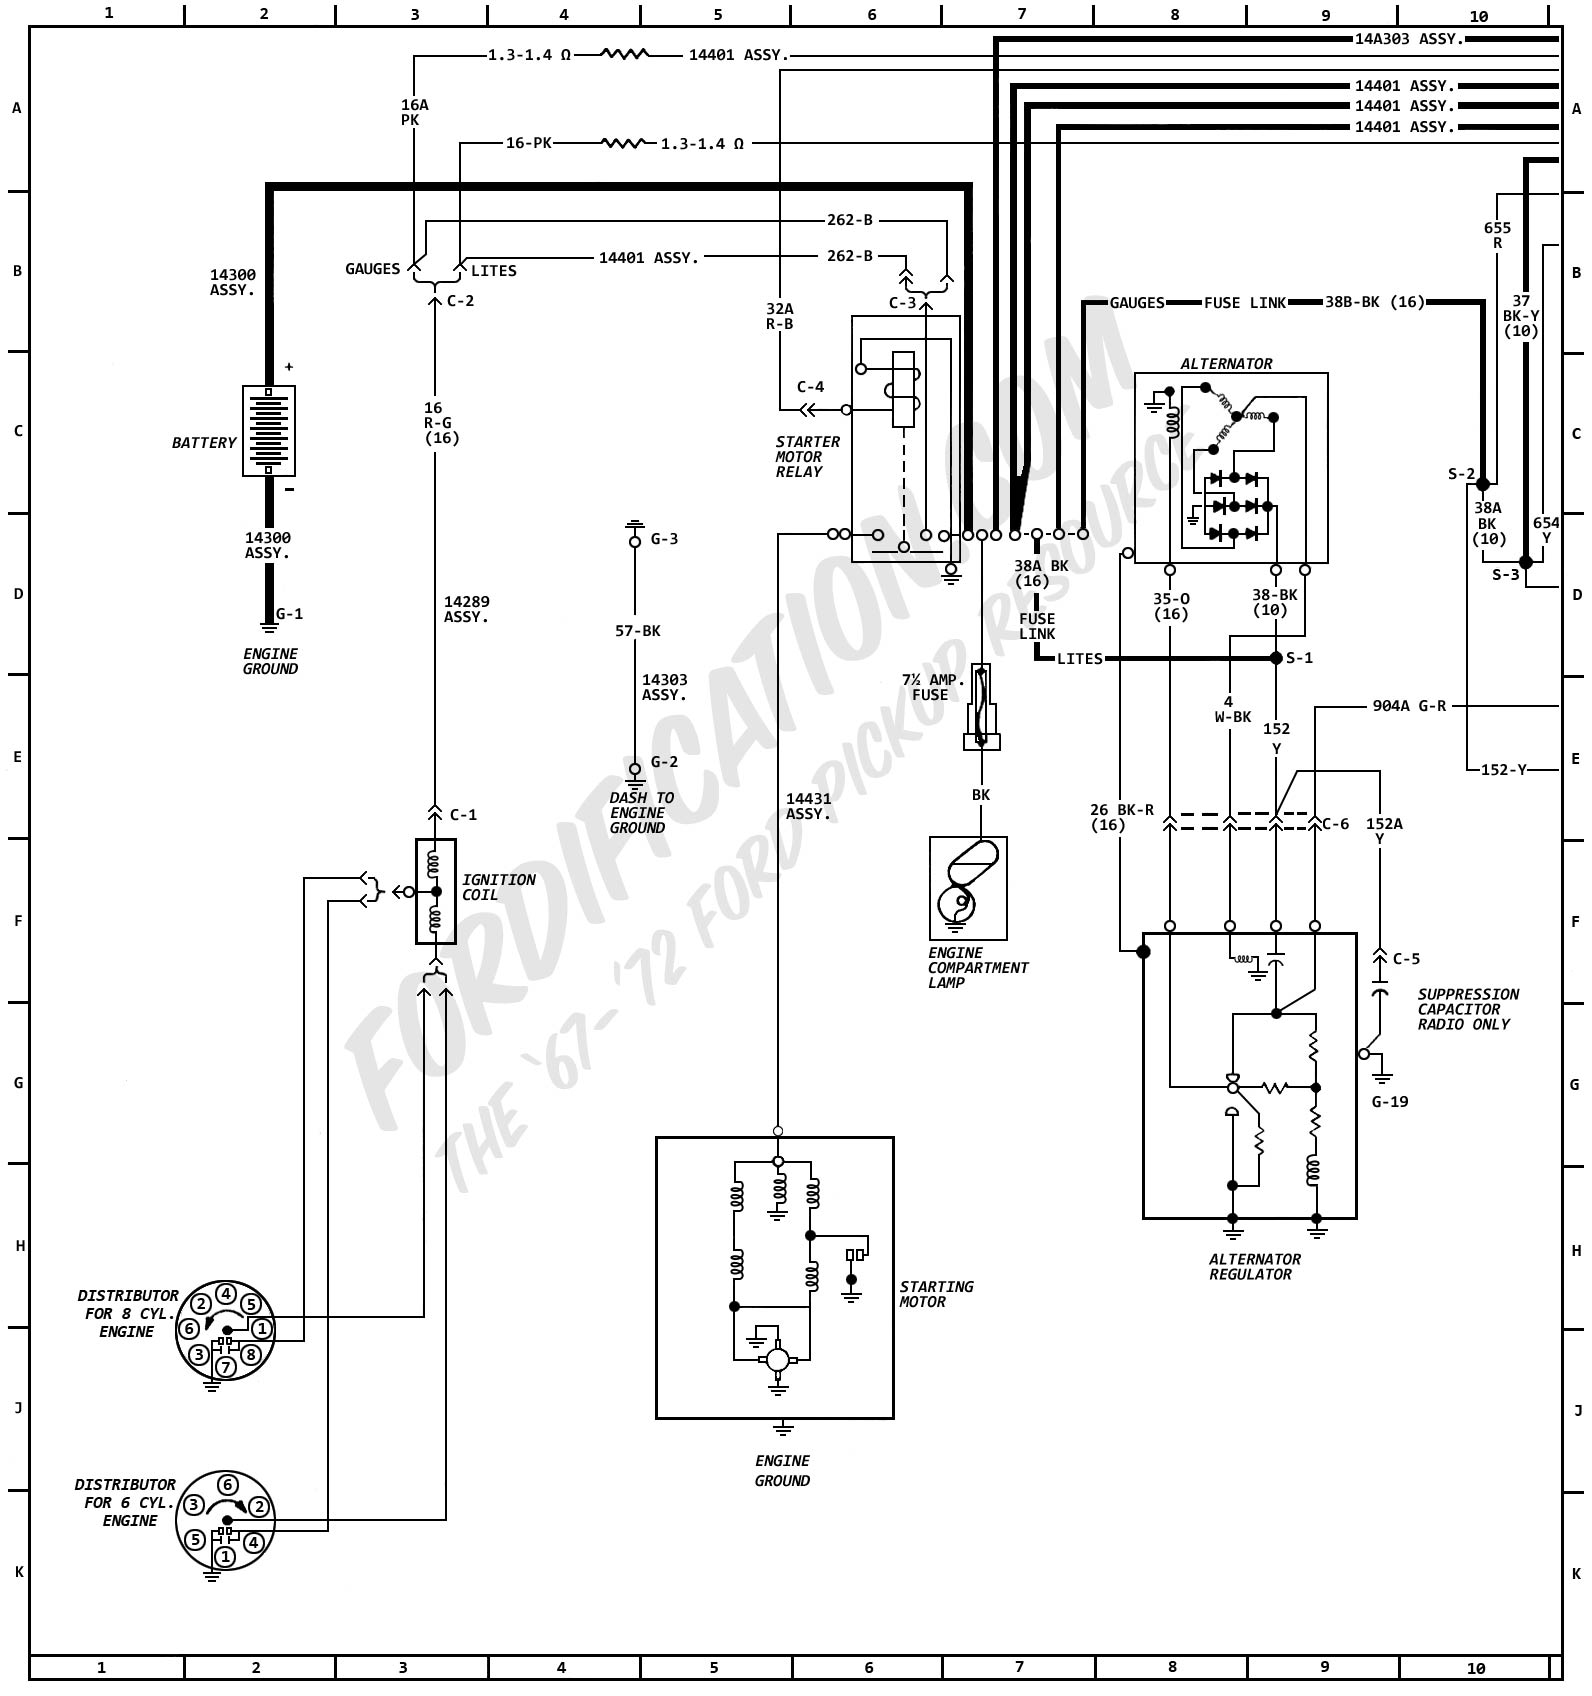 1979 Ford Ltd Wiring Diagram Online 1974 Bronco Alternator Data Flatbed 1972 F250 Schema